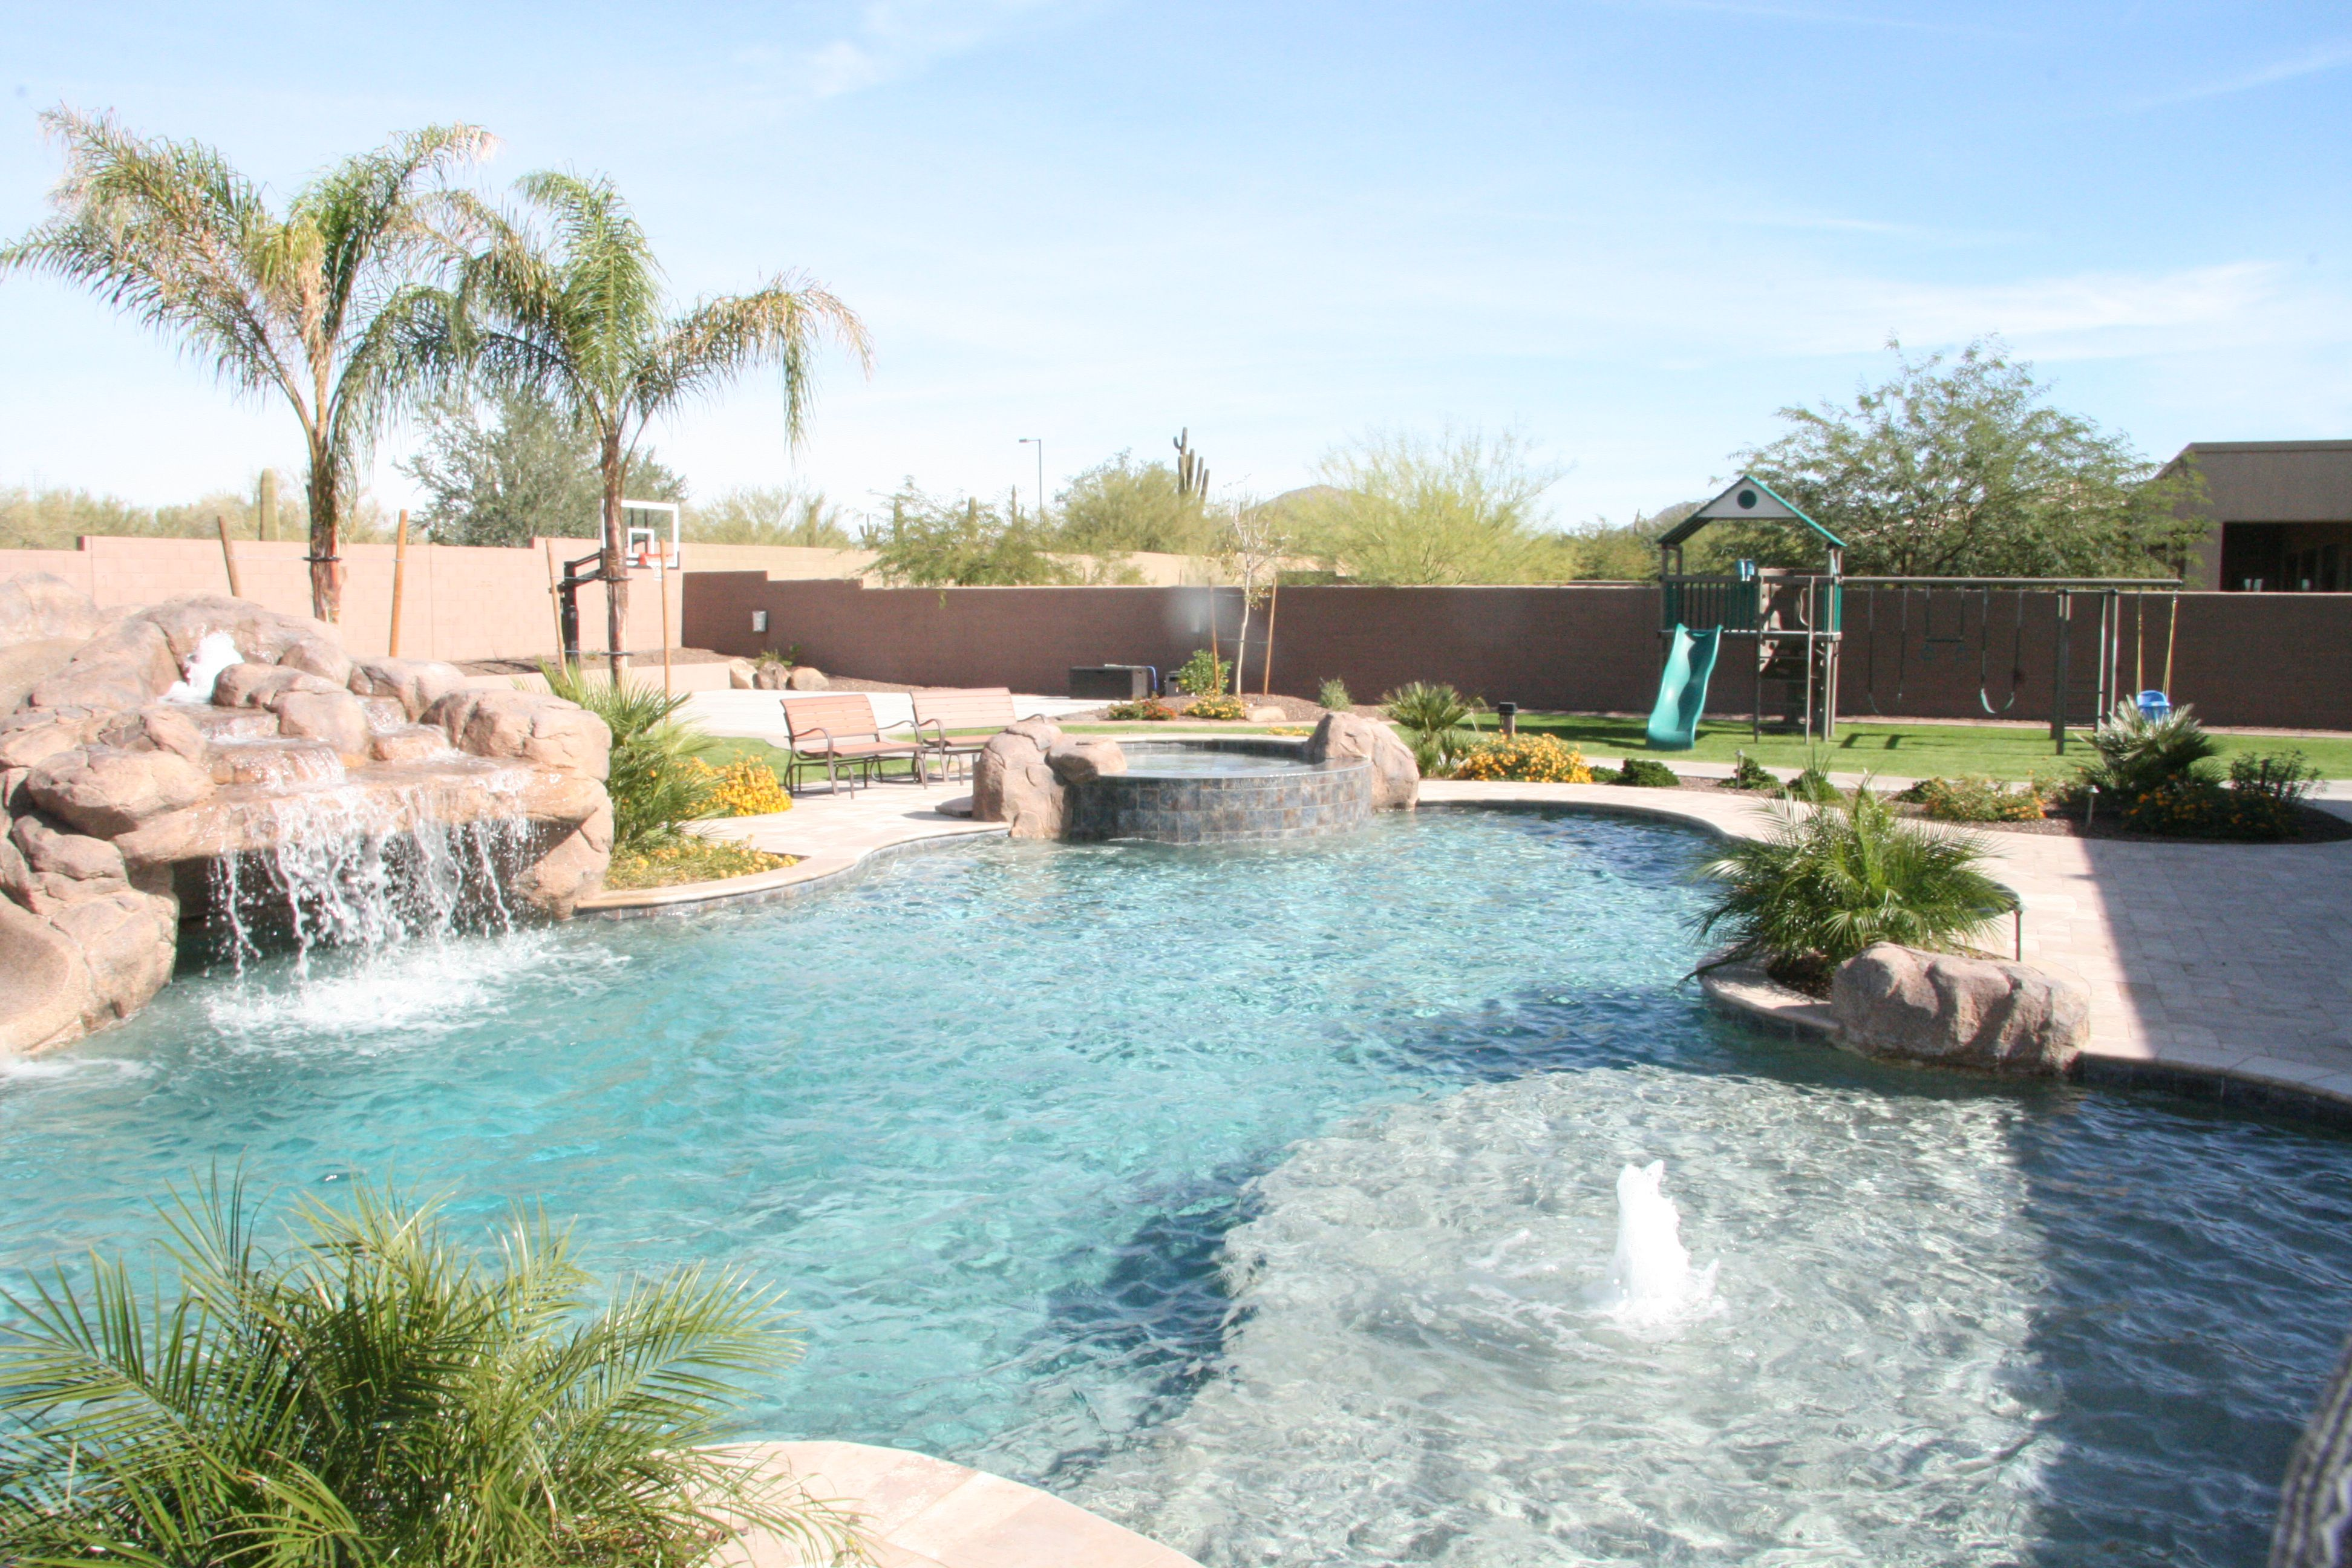 Freeform, Lagoon-style pool in Scottsdale, AZ by Unique Landscapes & Custom  Pools